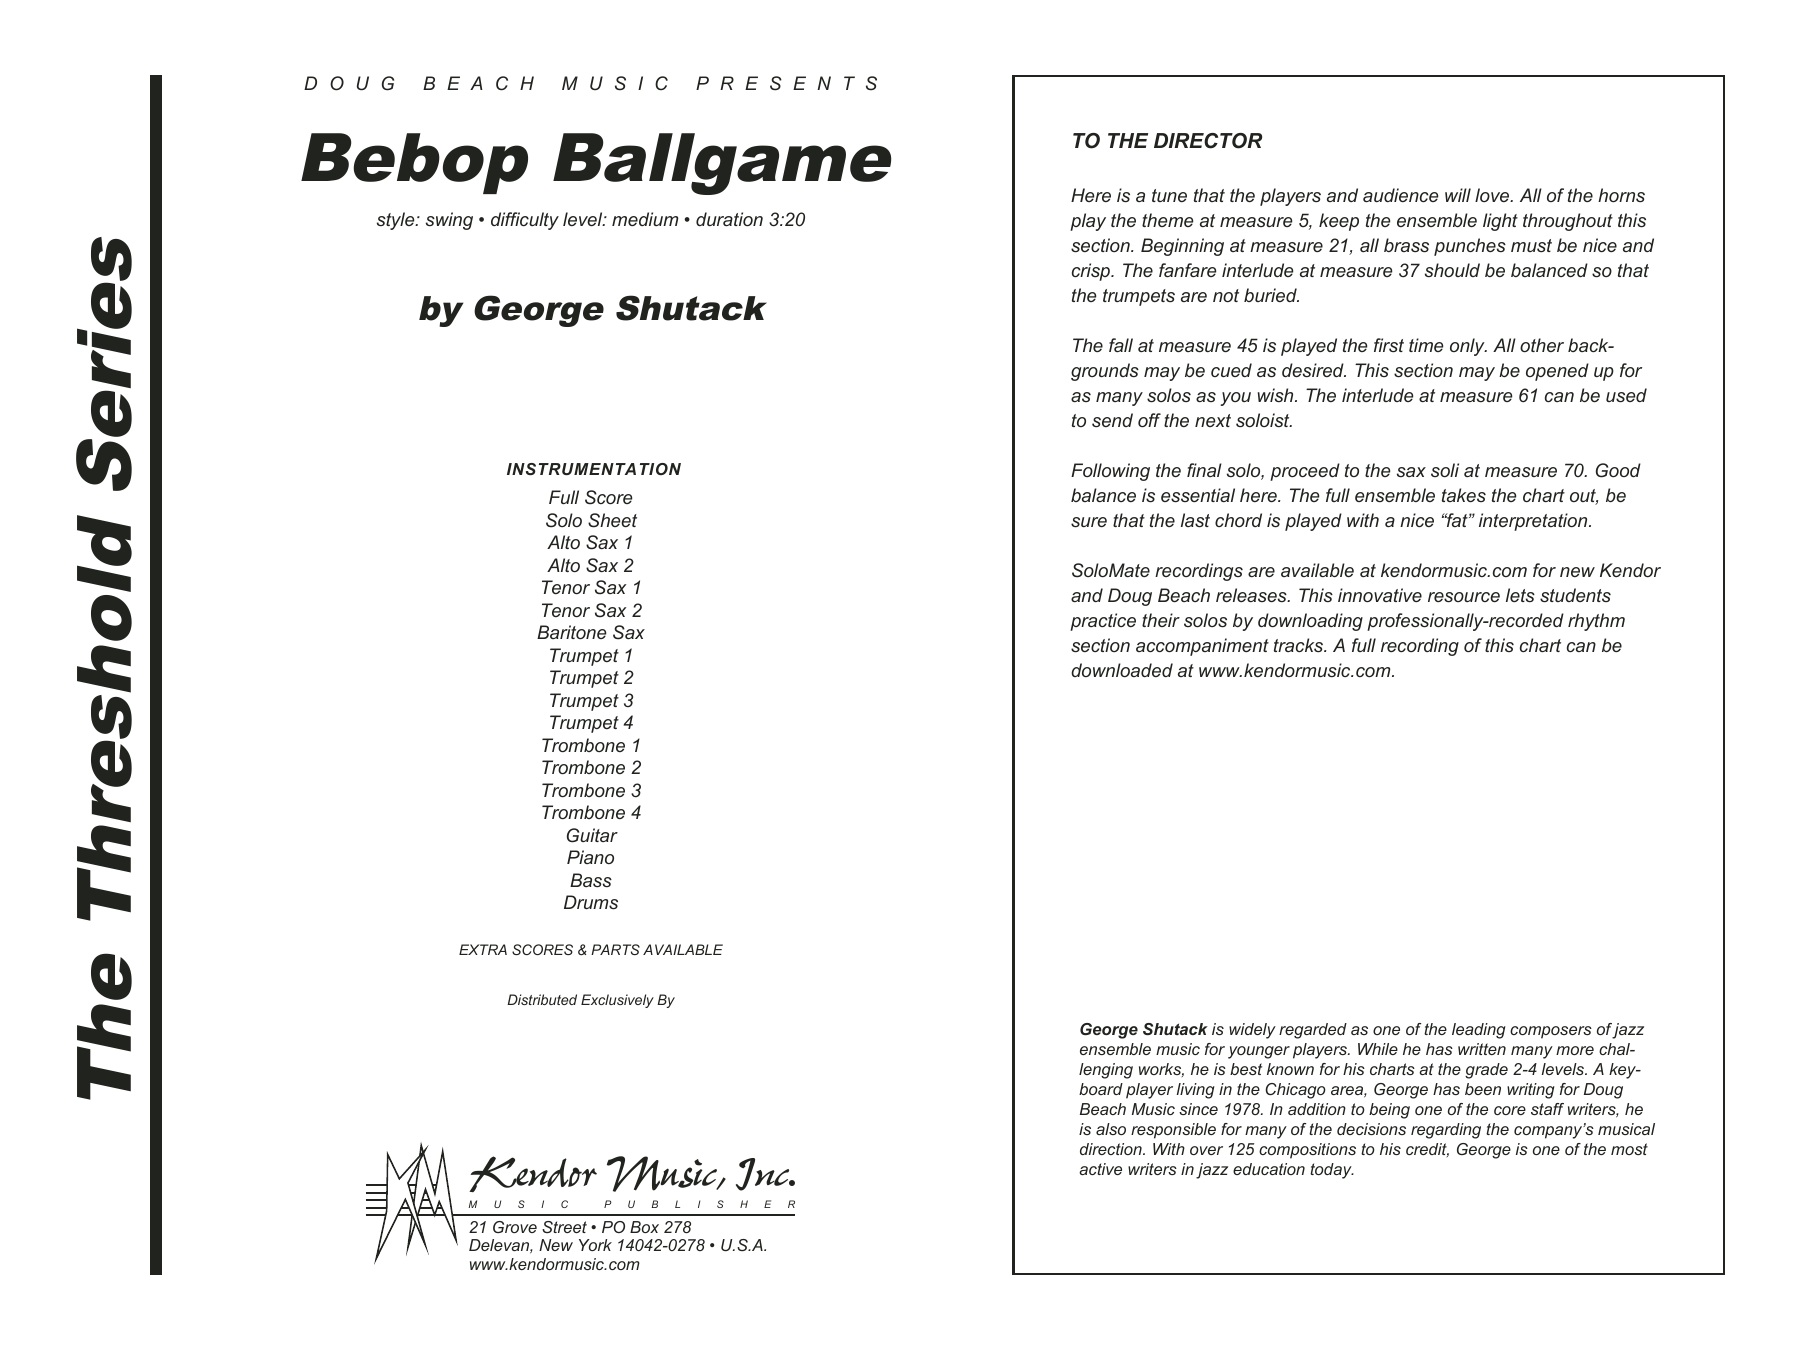 Bebop Ballgame - Full Score Sheet Music